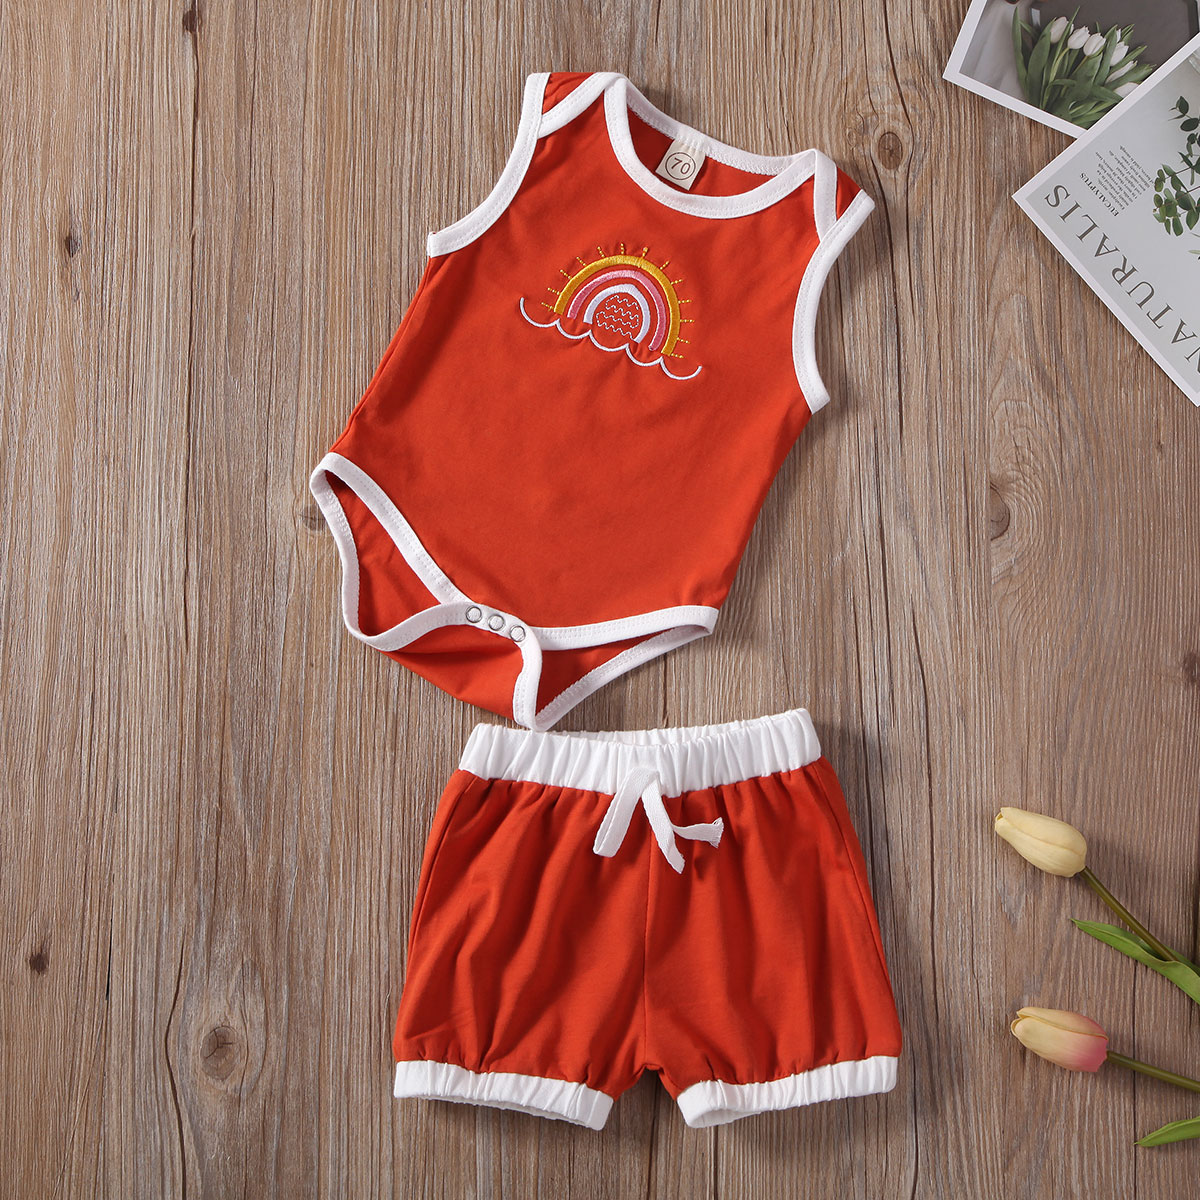 2Pcs Newborn Infant <font><b>Baby</b></font> Girls Boys Clothes Set Casual Summer Sleeveless Rompers Shorts Outfits <font><b>Baby</b></font> <font><b>Clothing</b></font> Suits 0-24M image